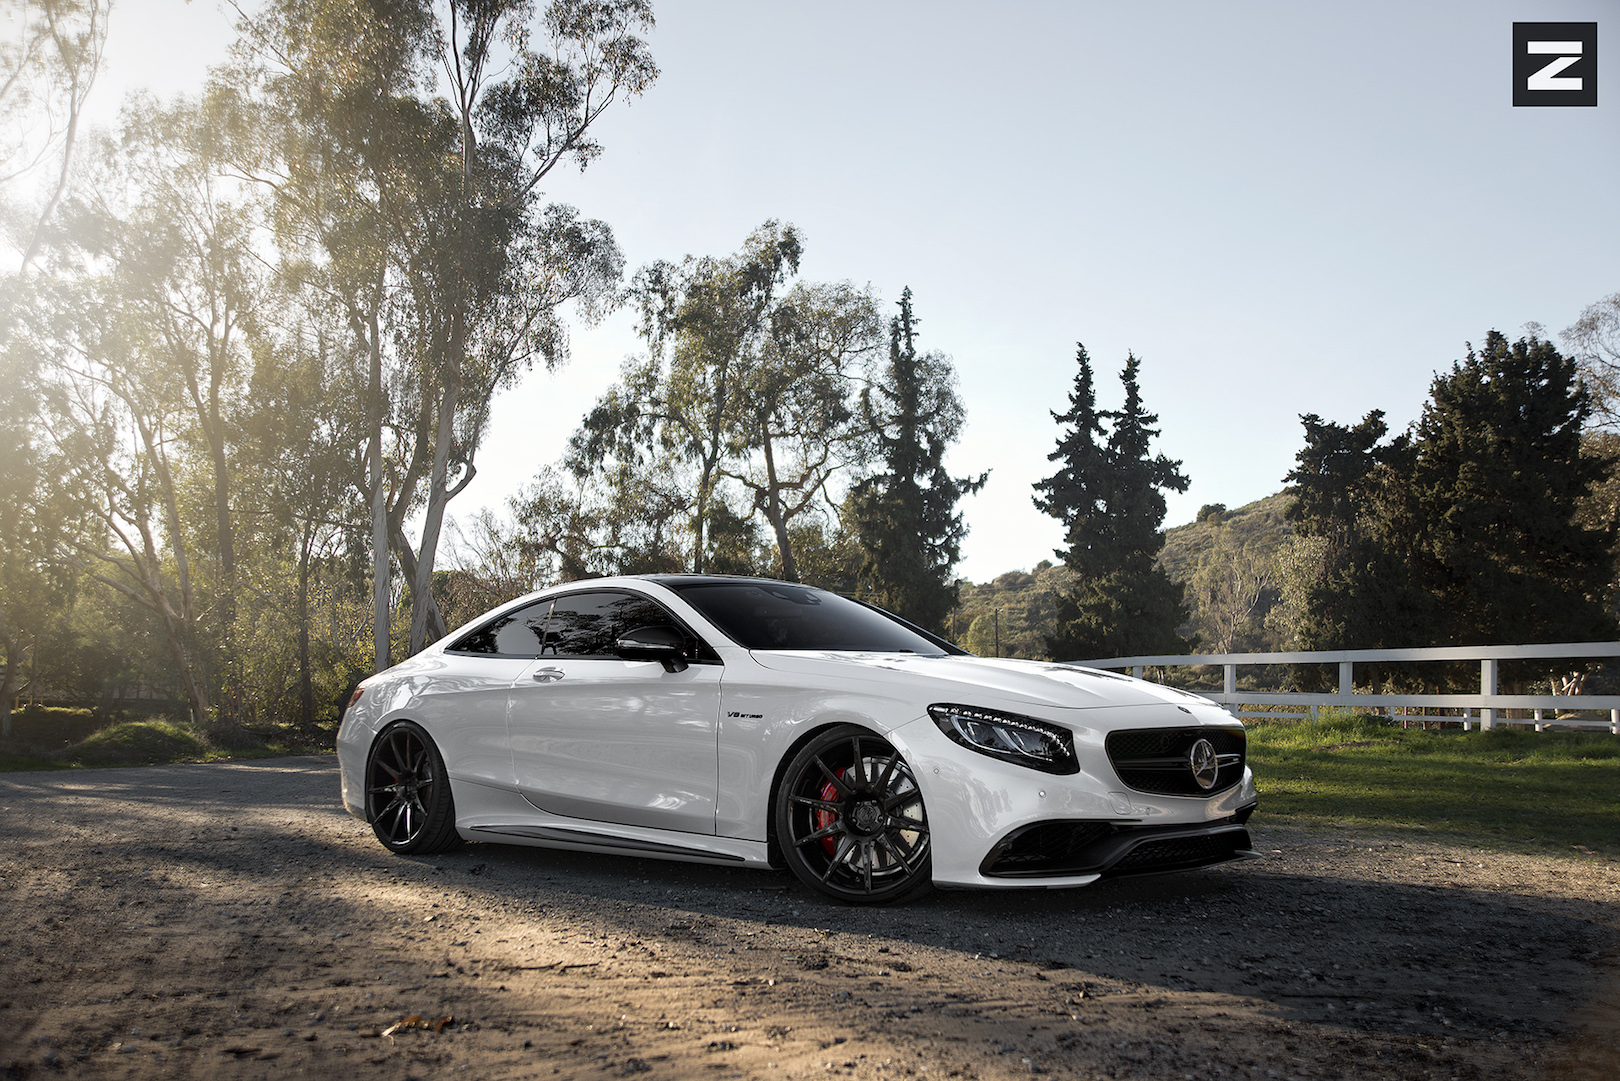 Mercedes Benz GS63 AMG Coupe White Black ZS03